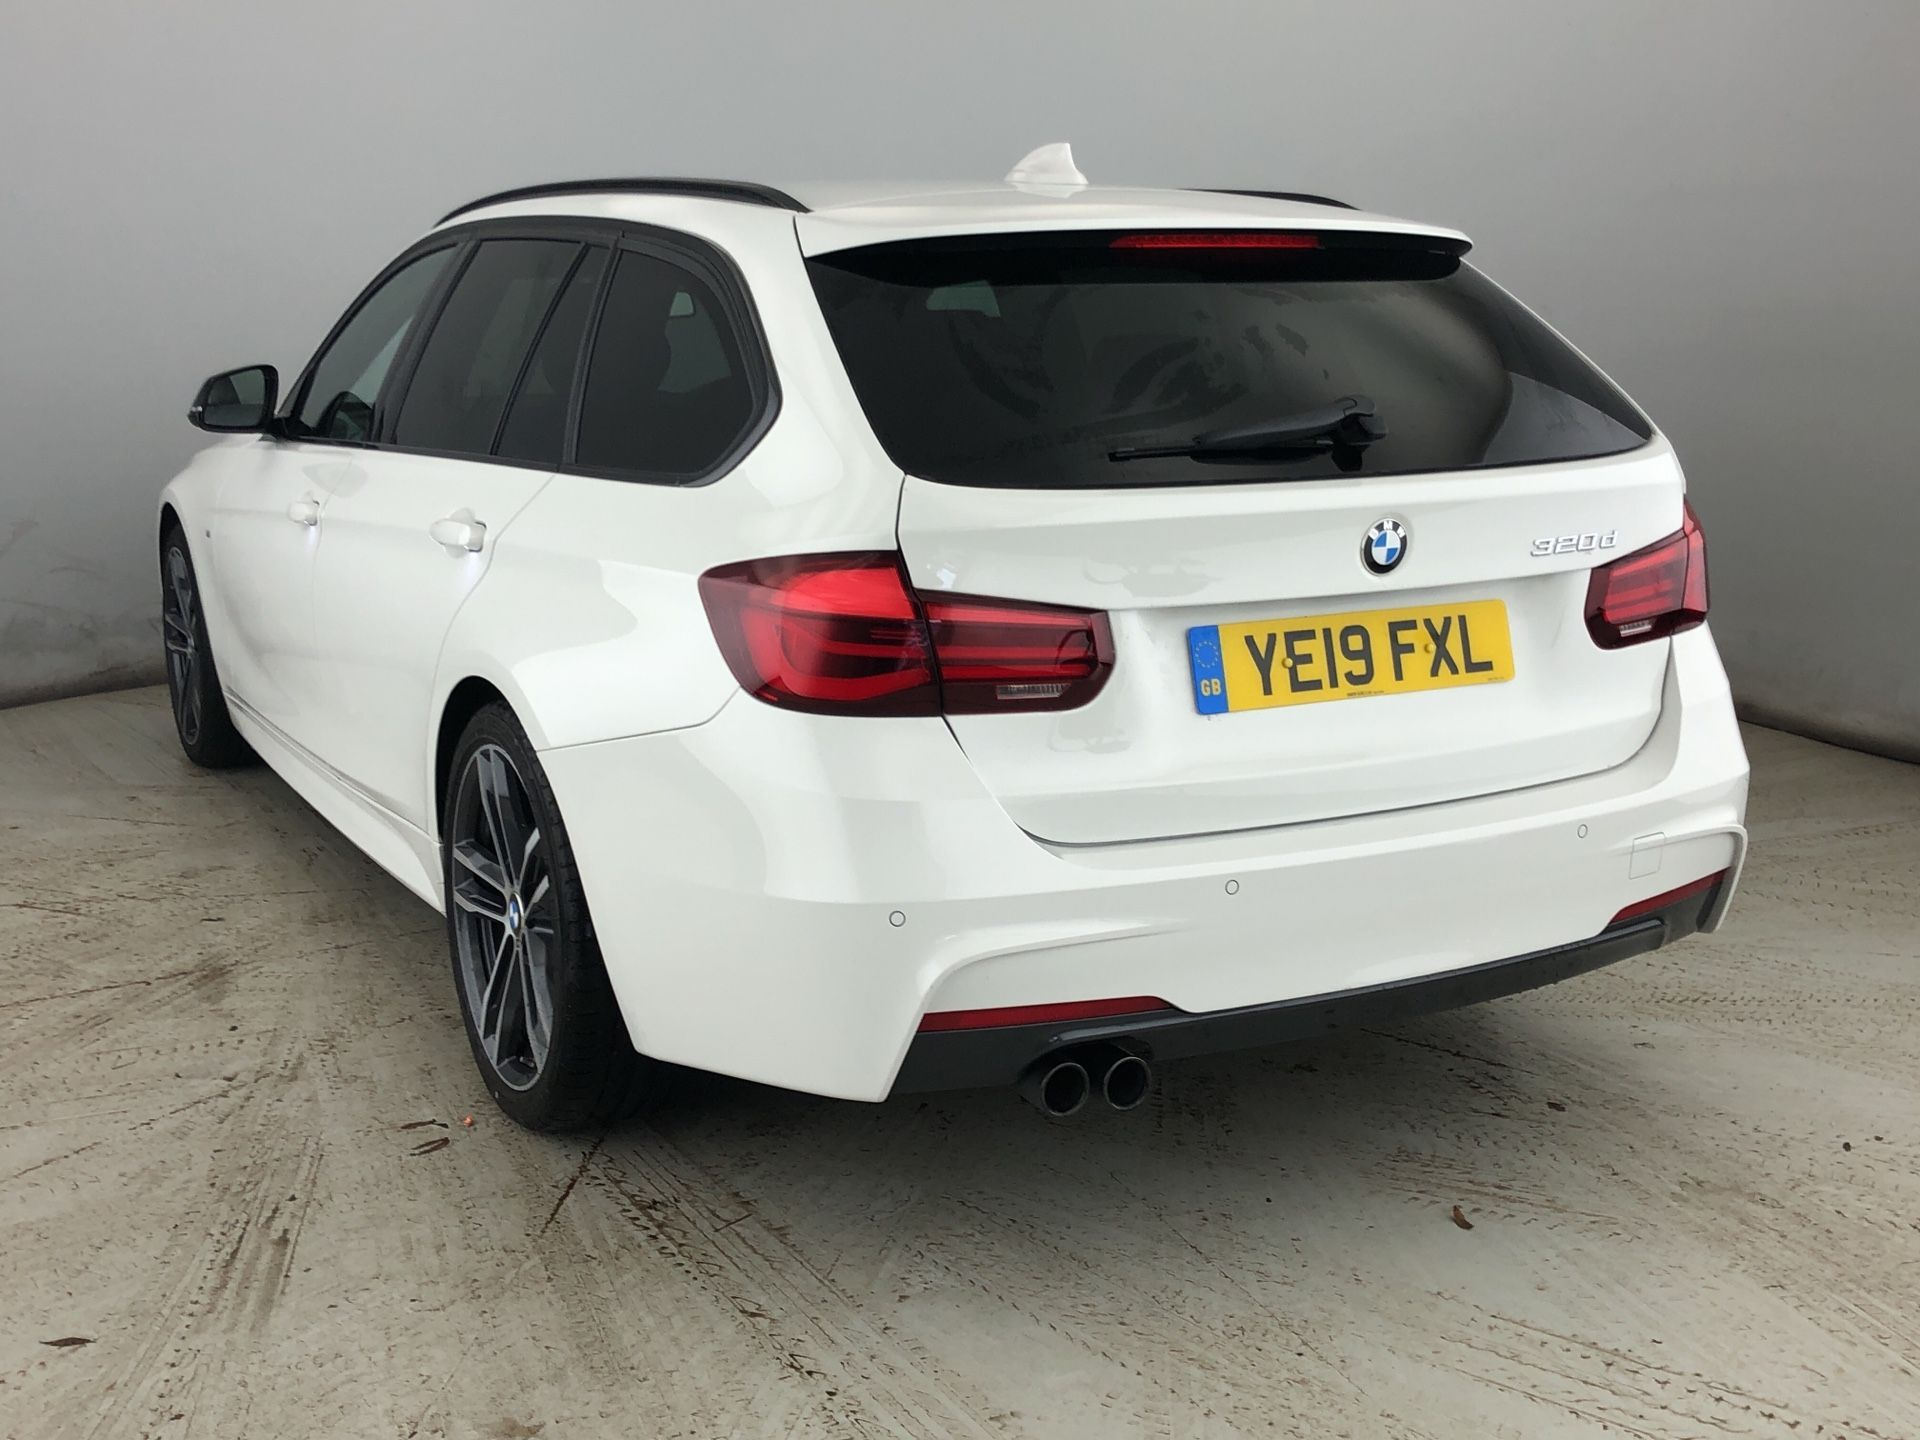 Image 2 - BMW 320d M Sport Shadow Edition Touring (YE19FXL)